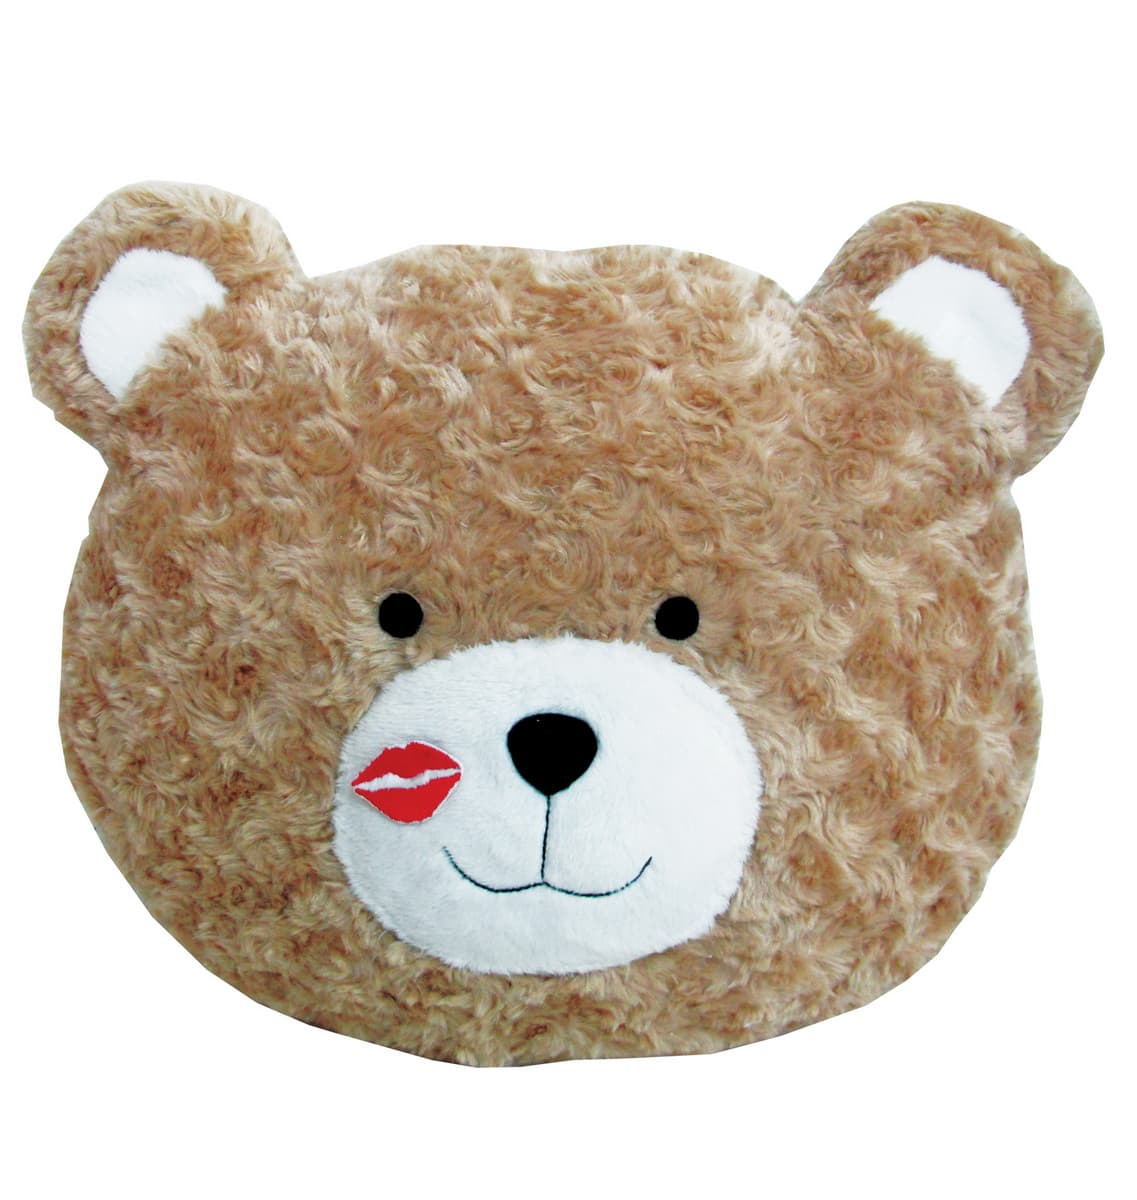 KISS ME BEAR CUSHION 15 INCHI KODE 051500001004